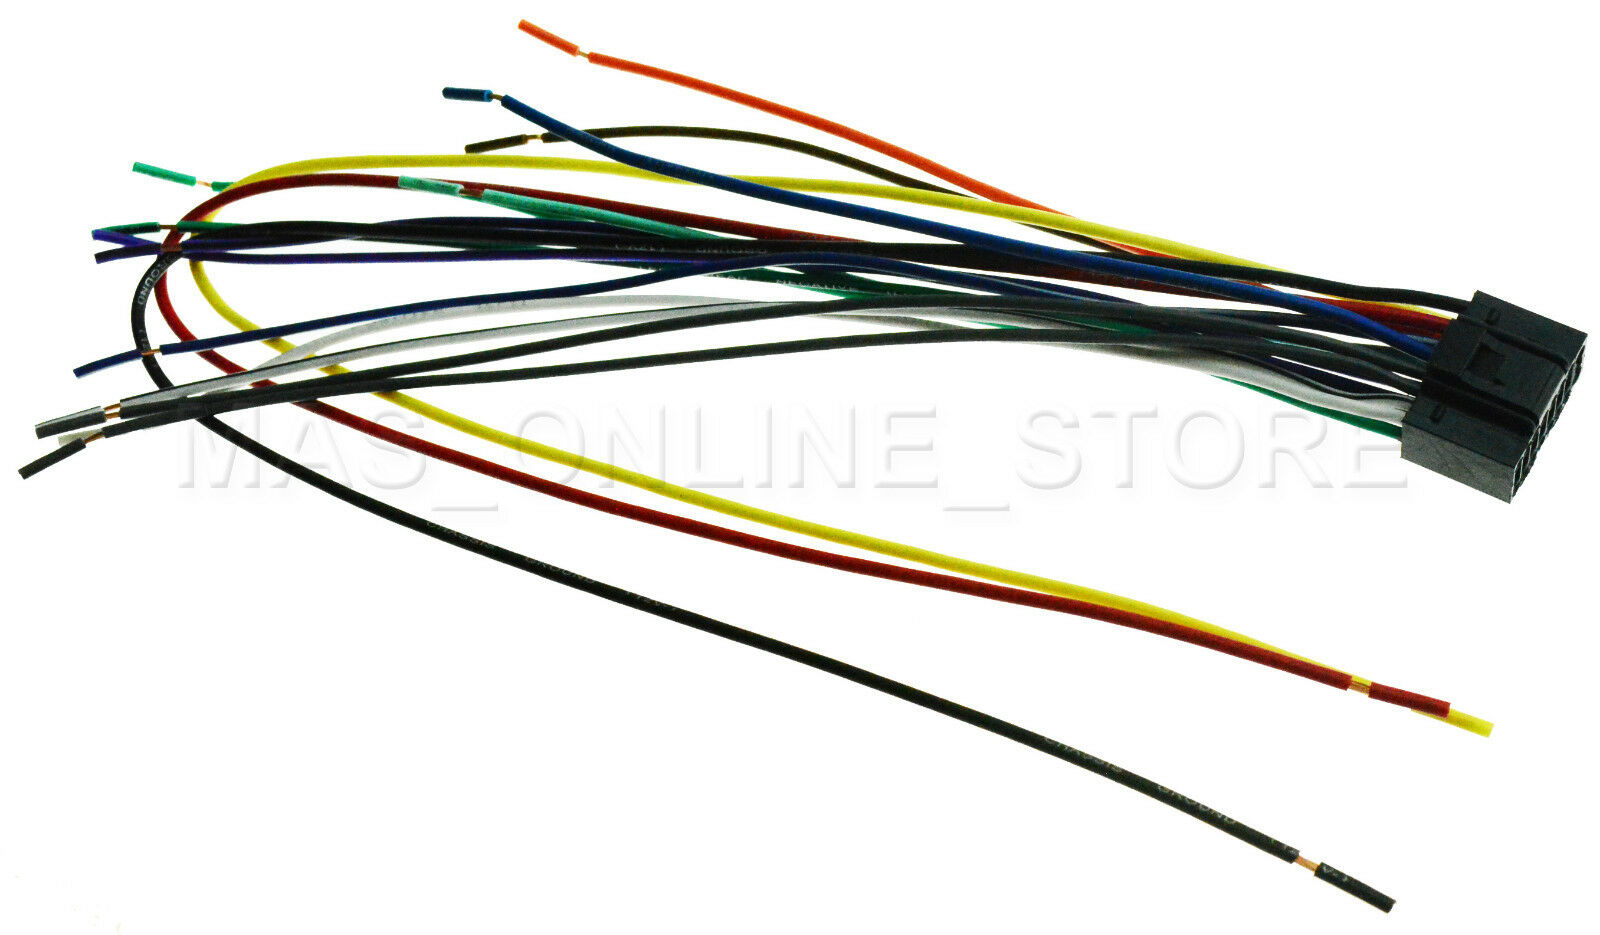 Wiring Diagram Kenwood Kdc Bt310u X797 Car Stereo Harness Wire For Kdcbt310u Ships Today 935